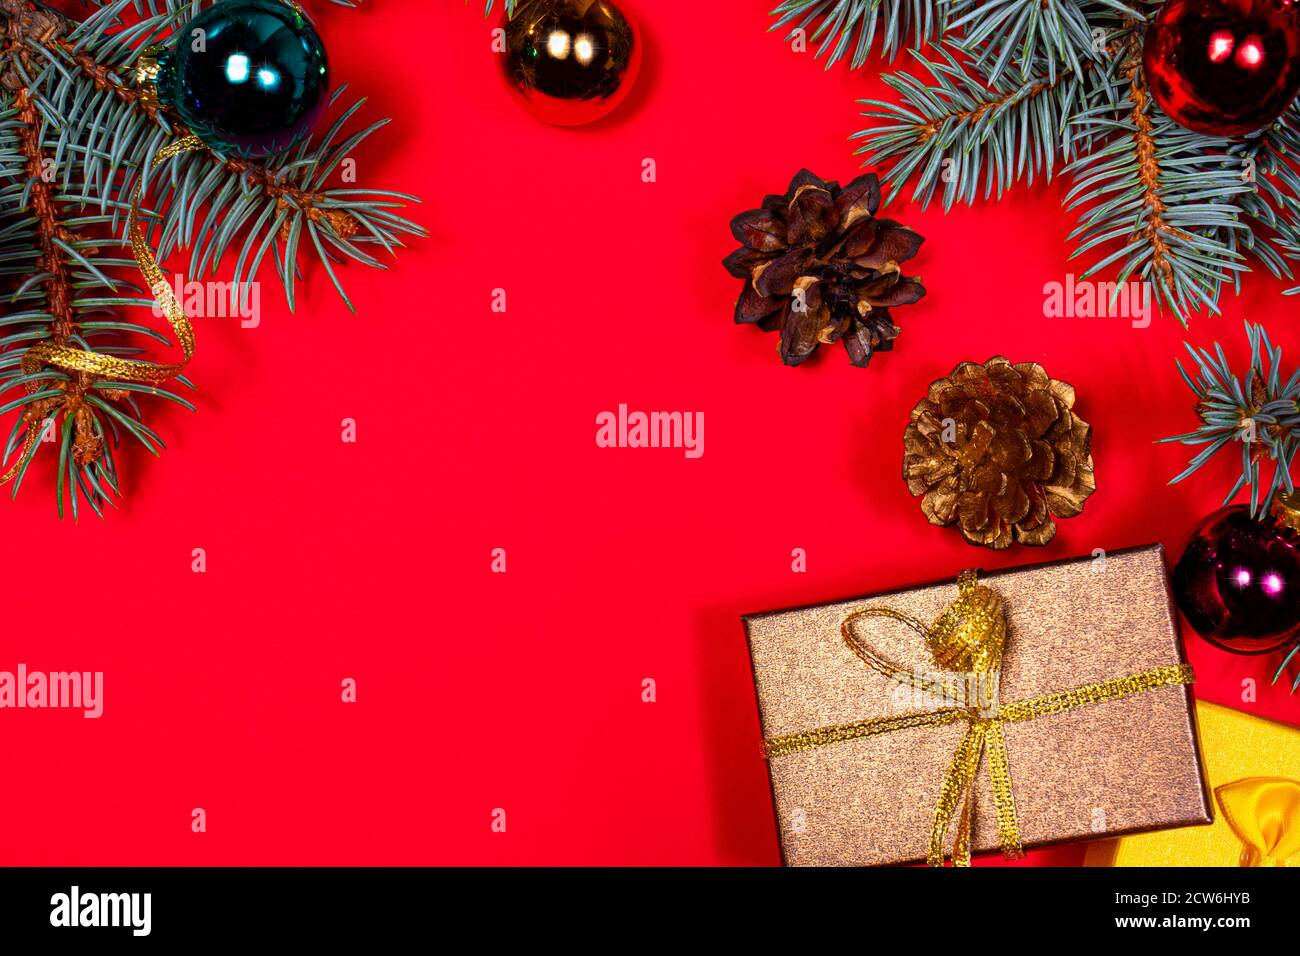 Lots Of Christmas Gifts 2021 Two Christmas Gifts Brown And Yellow Tied With Ribbons Under The Christmas Tree On A Red Background Gifts For New 2021 Stock Photo Alamy